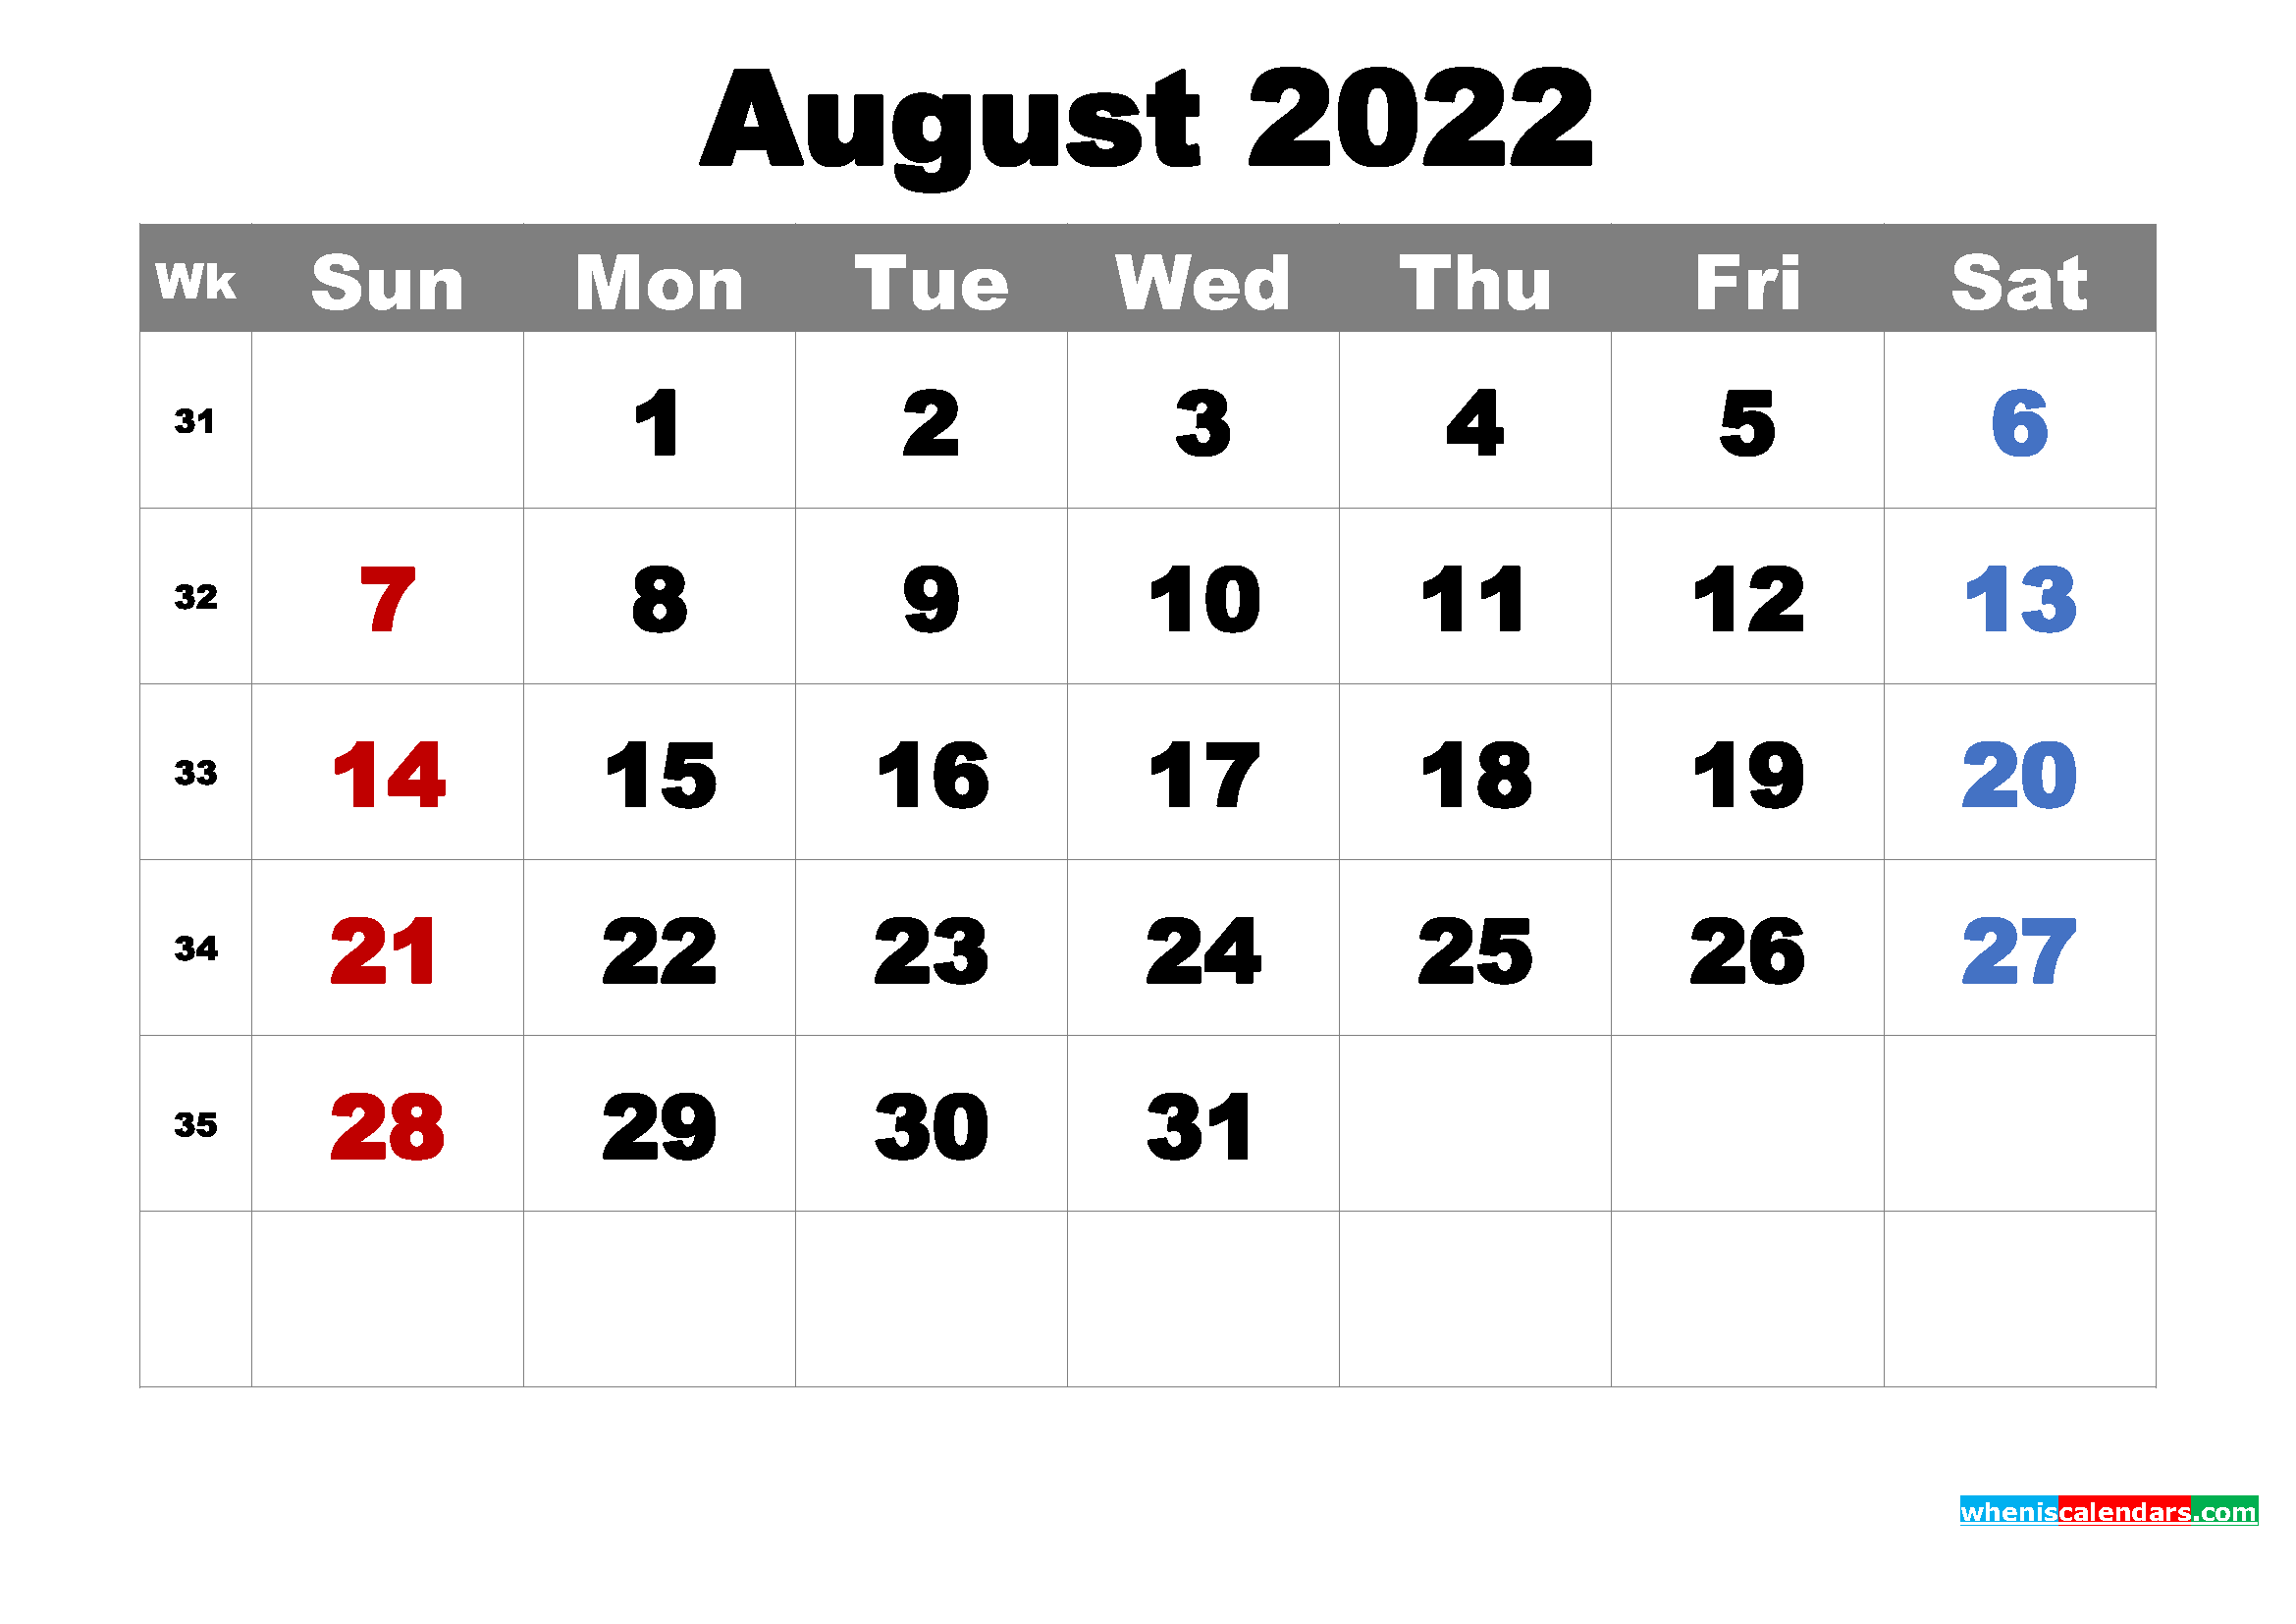 Printable August 2022 Calendar by Month